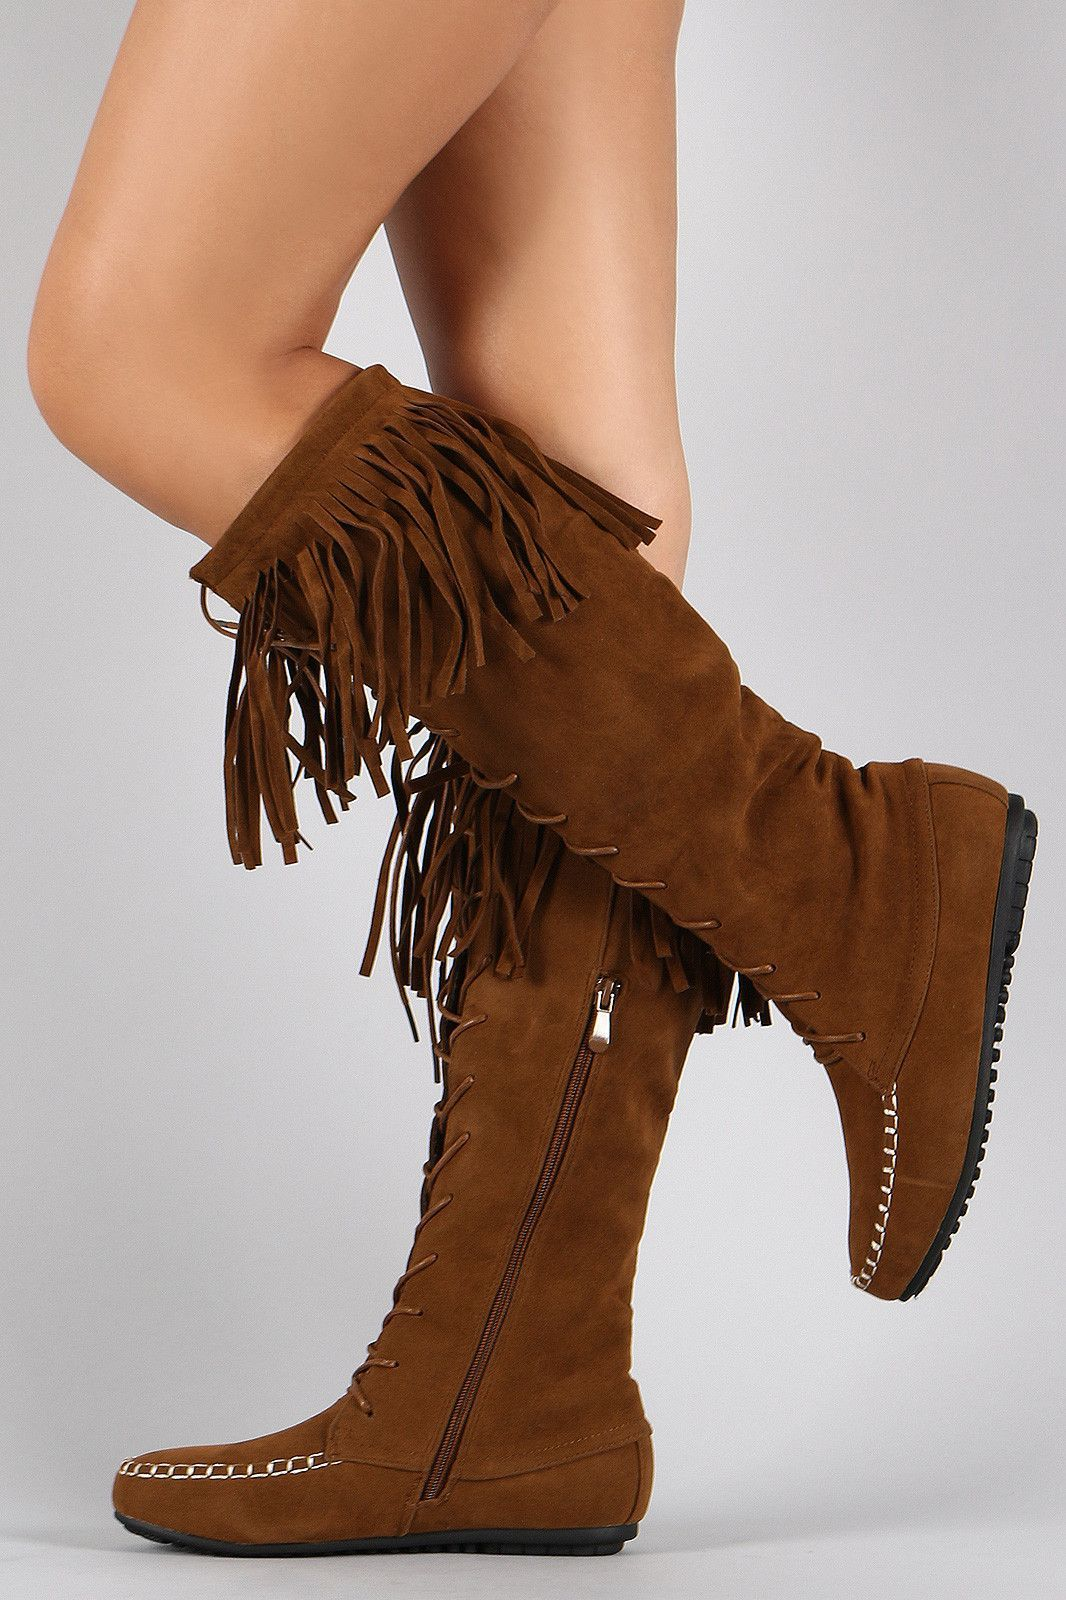 Minnetonka suede leather knee high tall lace up moccasin fringe boots - Suede Fringe Moccasin Lace Up Knee High Flat Boot